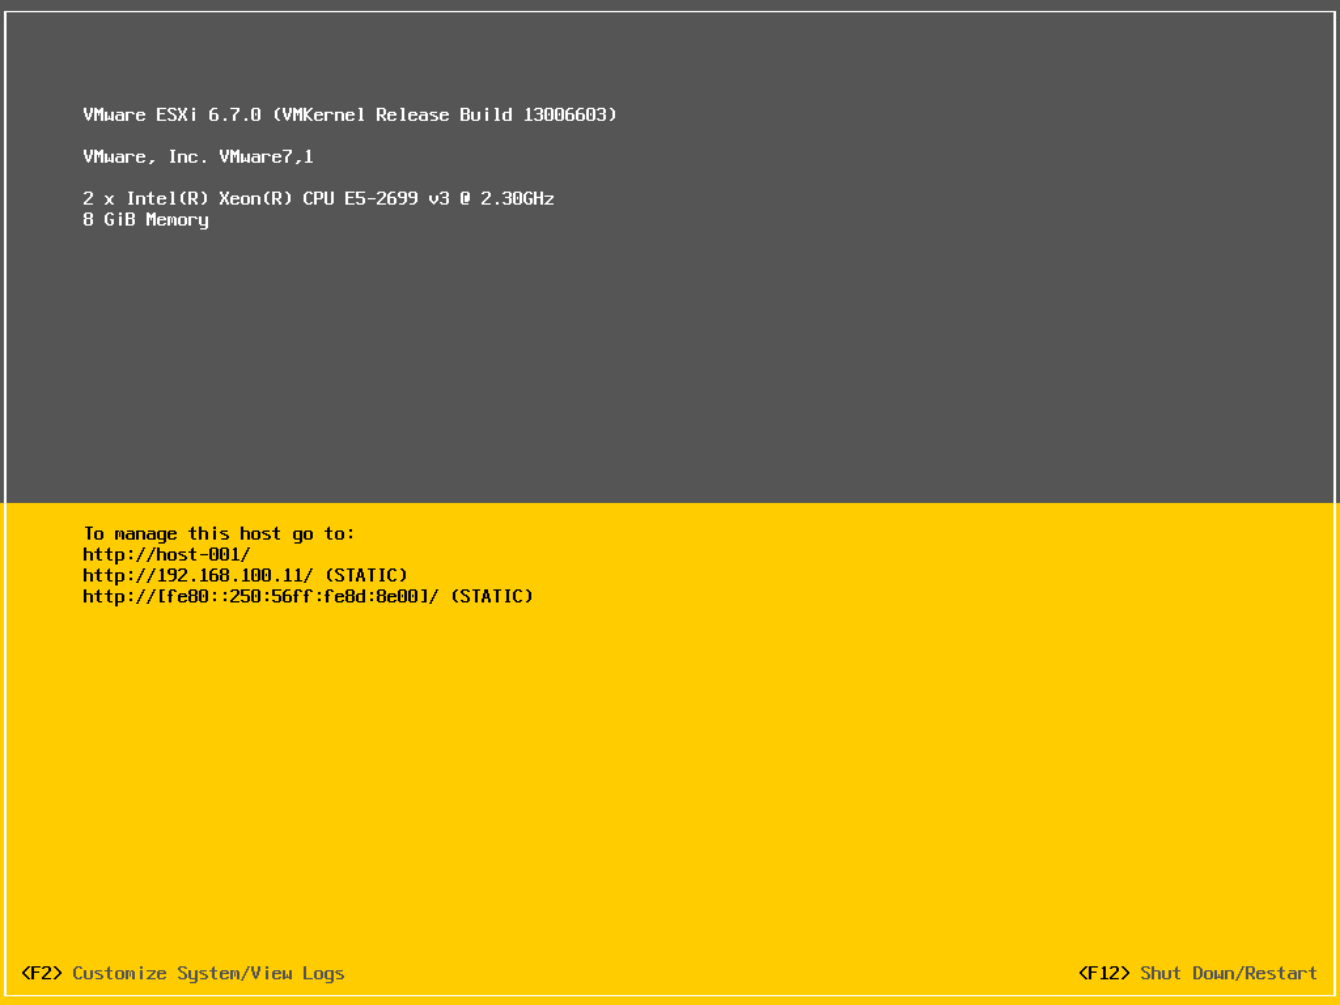 Installer finished, note hostname and IP